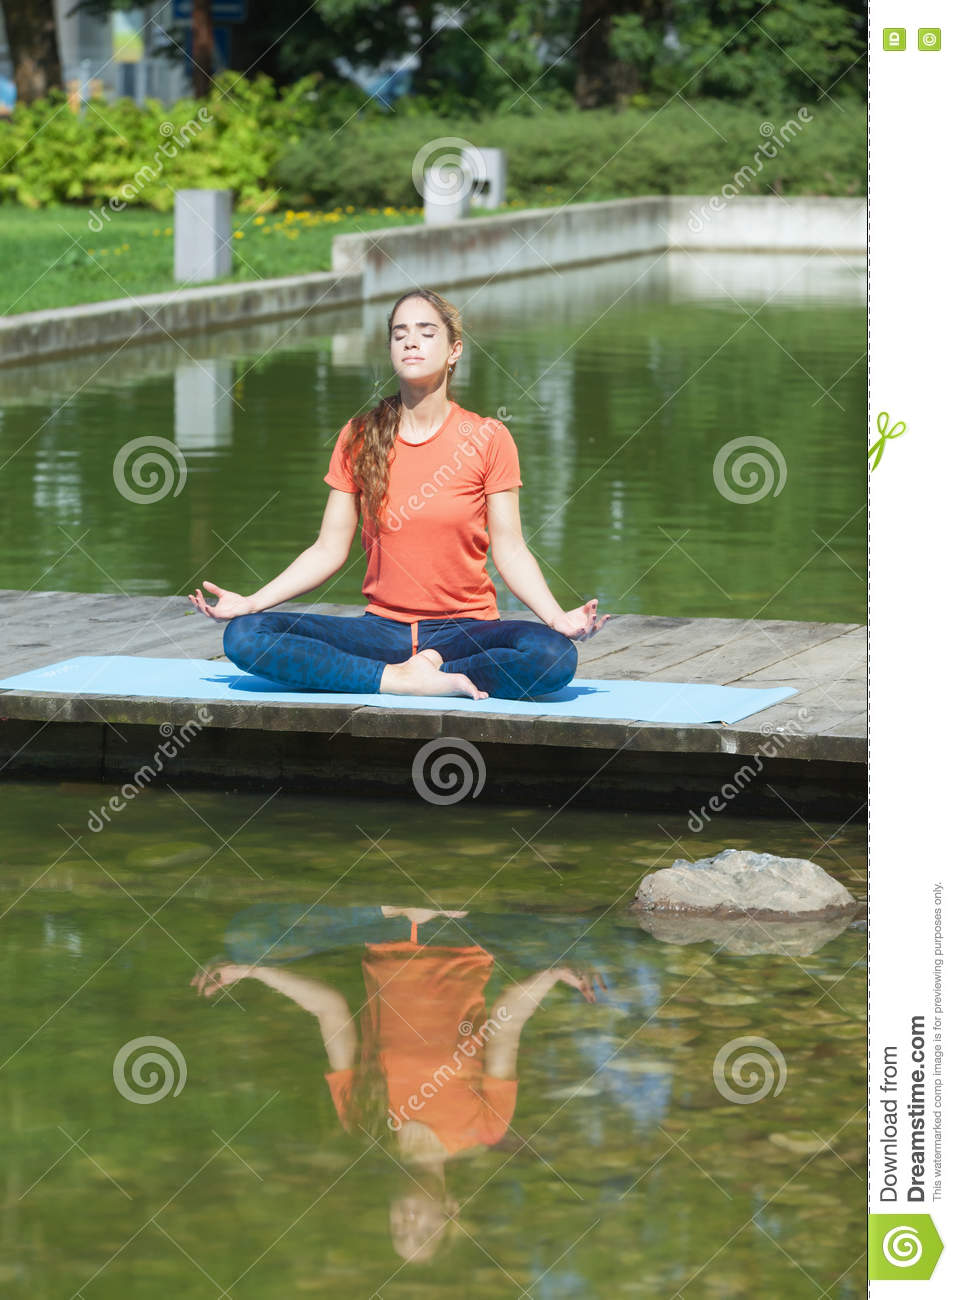 Download Meditation Next To The Water Stock Photo - Image of leisure, concentration: 76724244